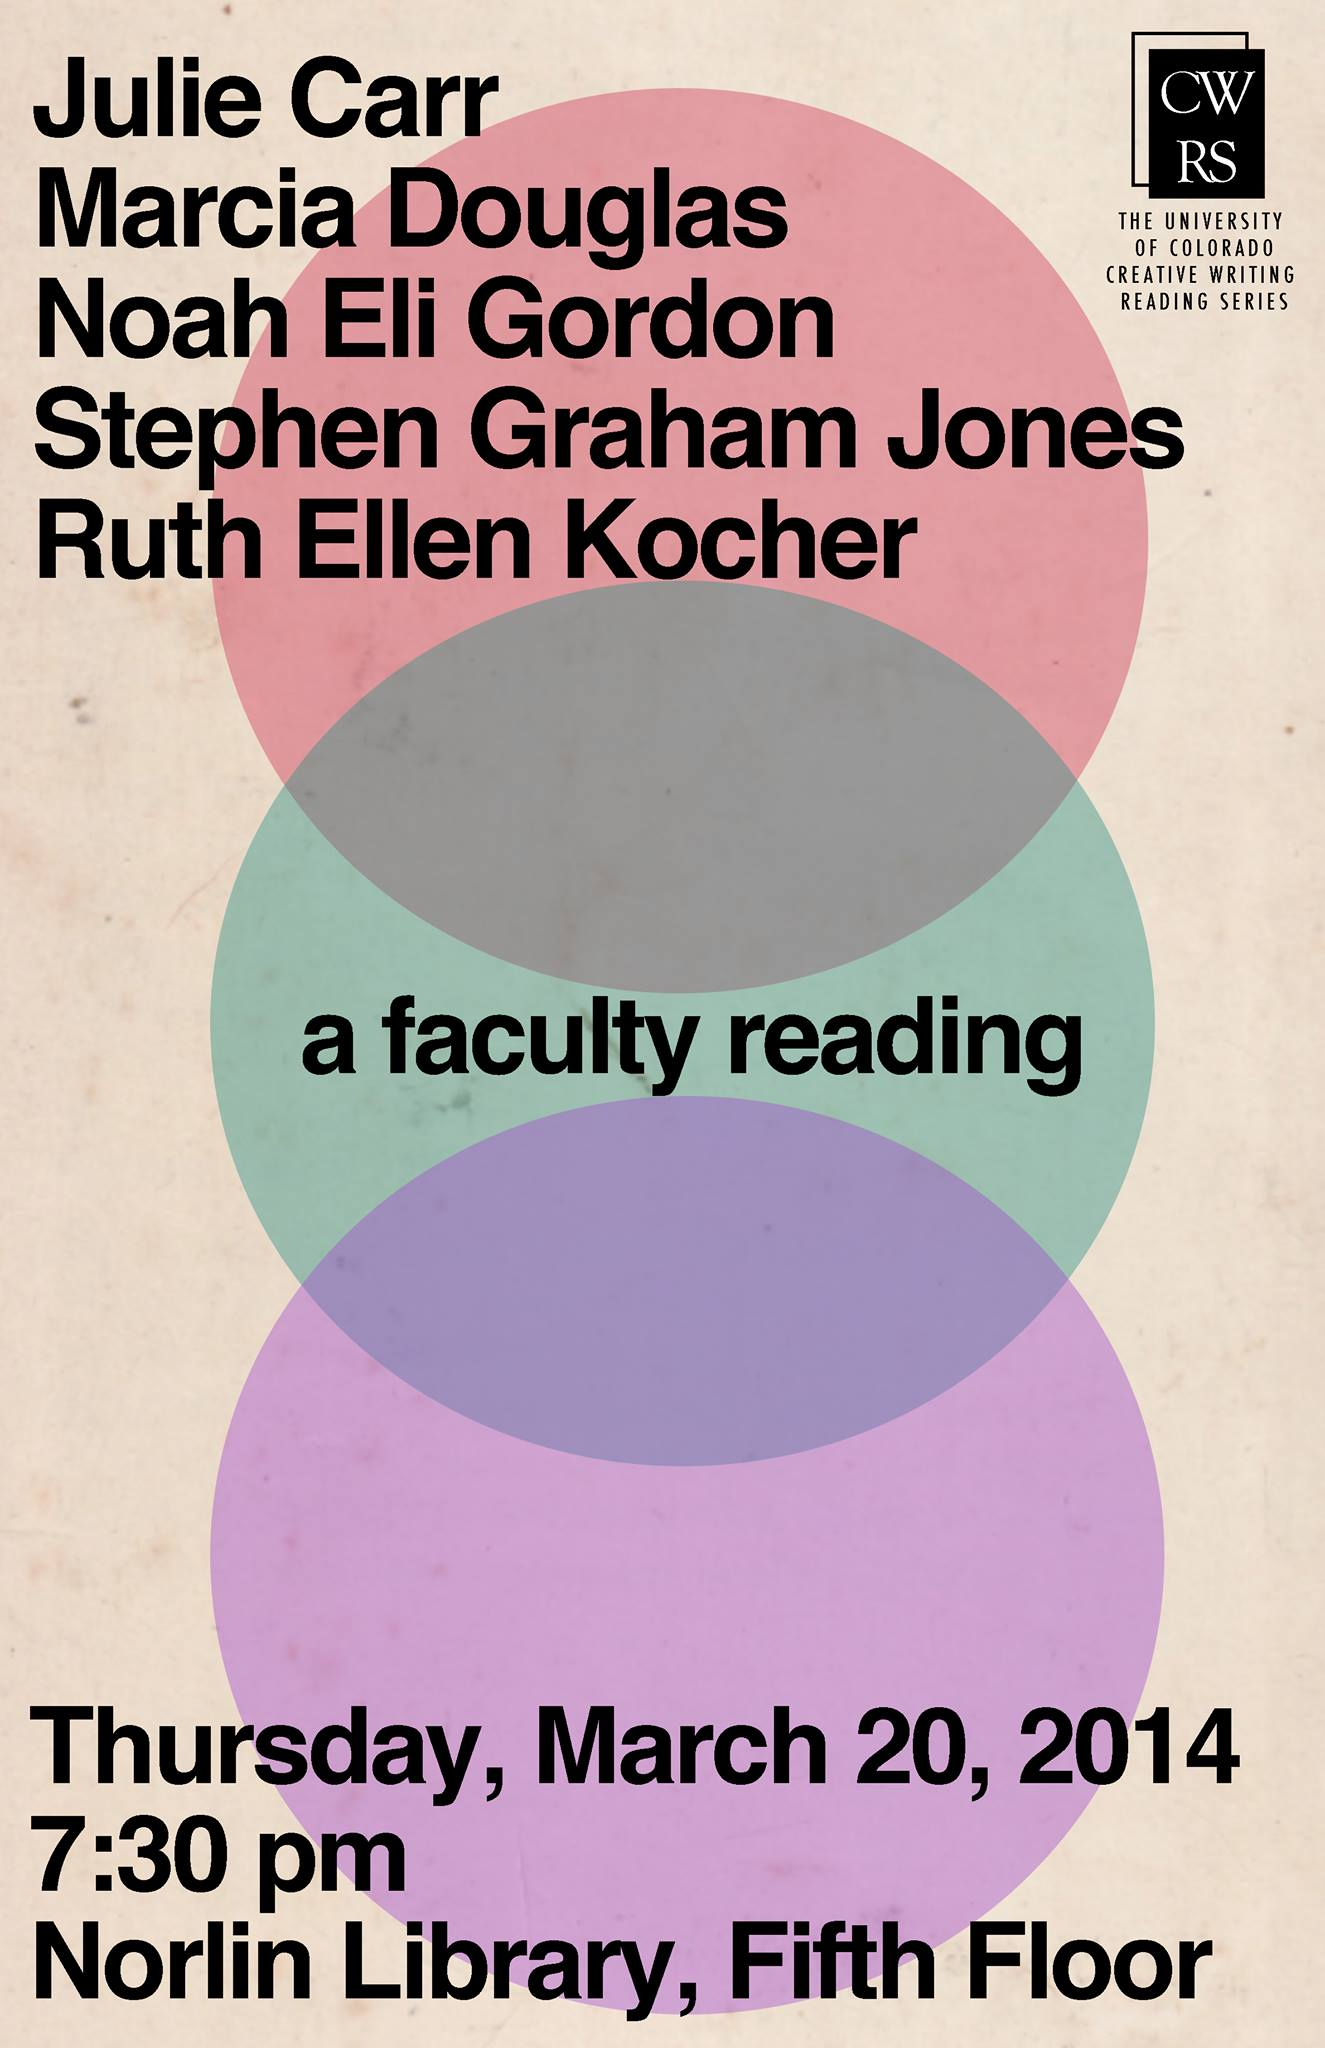 University of Colorado Boulder Creative Writing Reading Series publicity poster, Faculty Reading